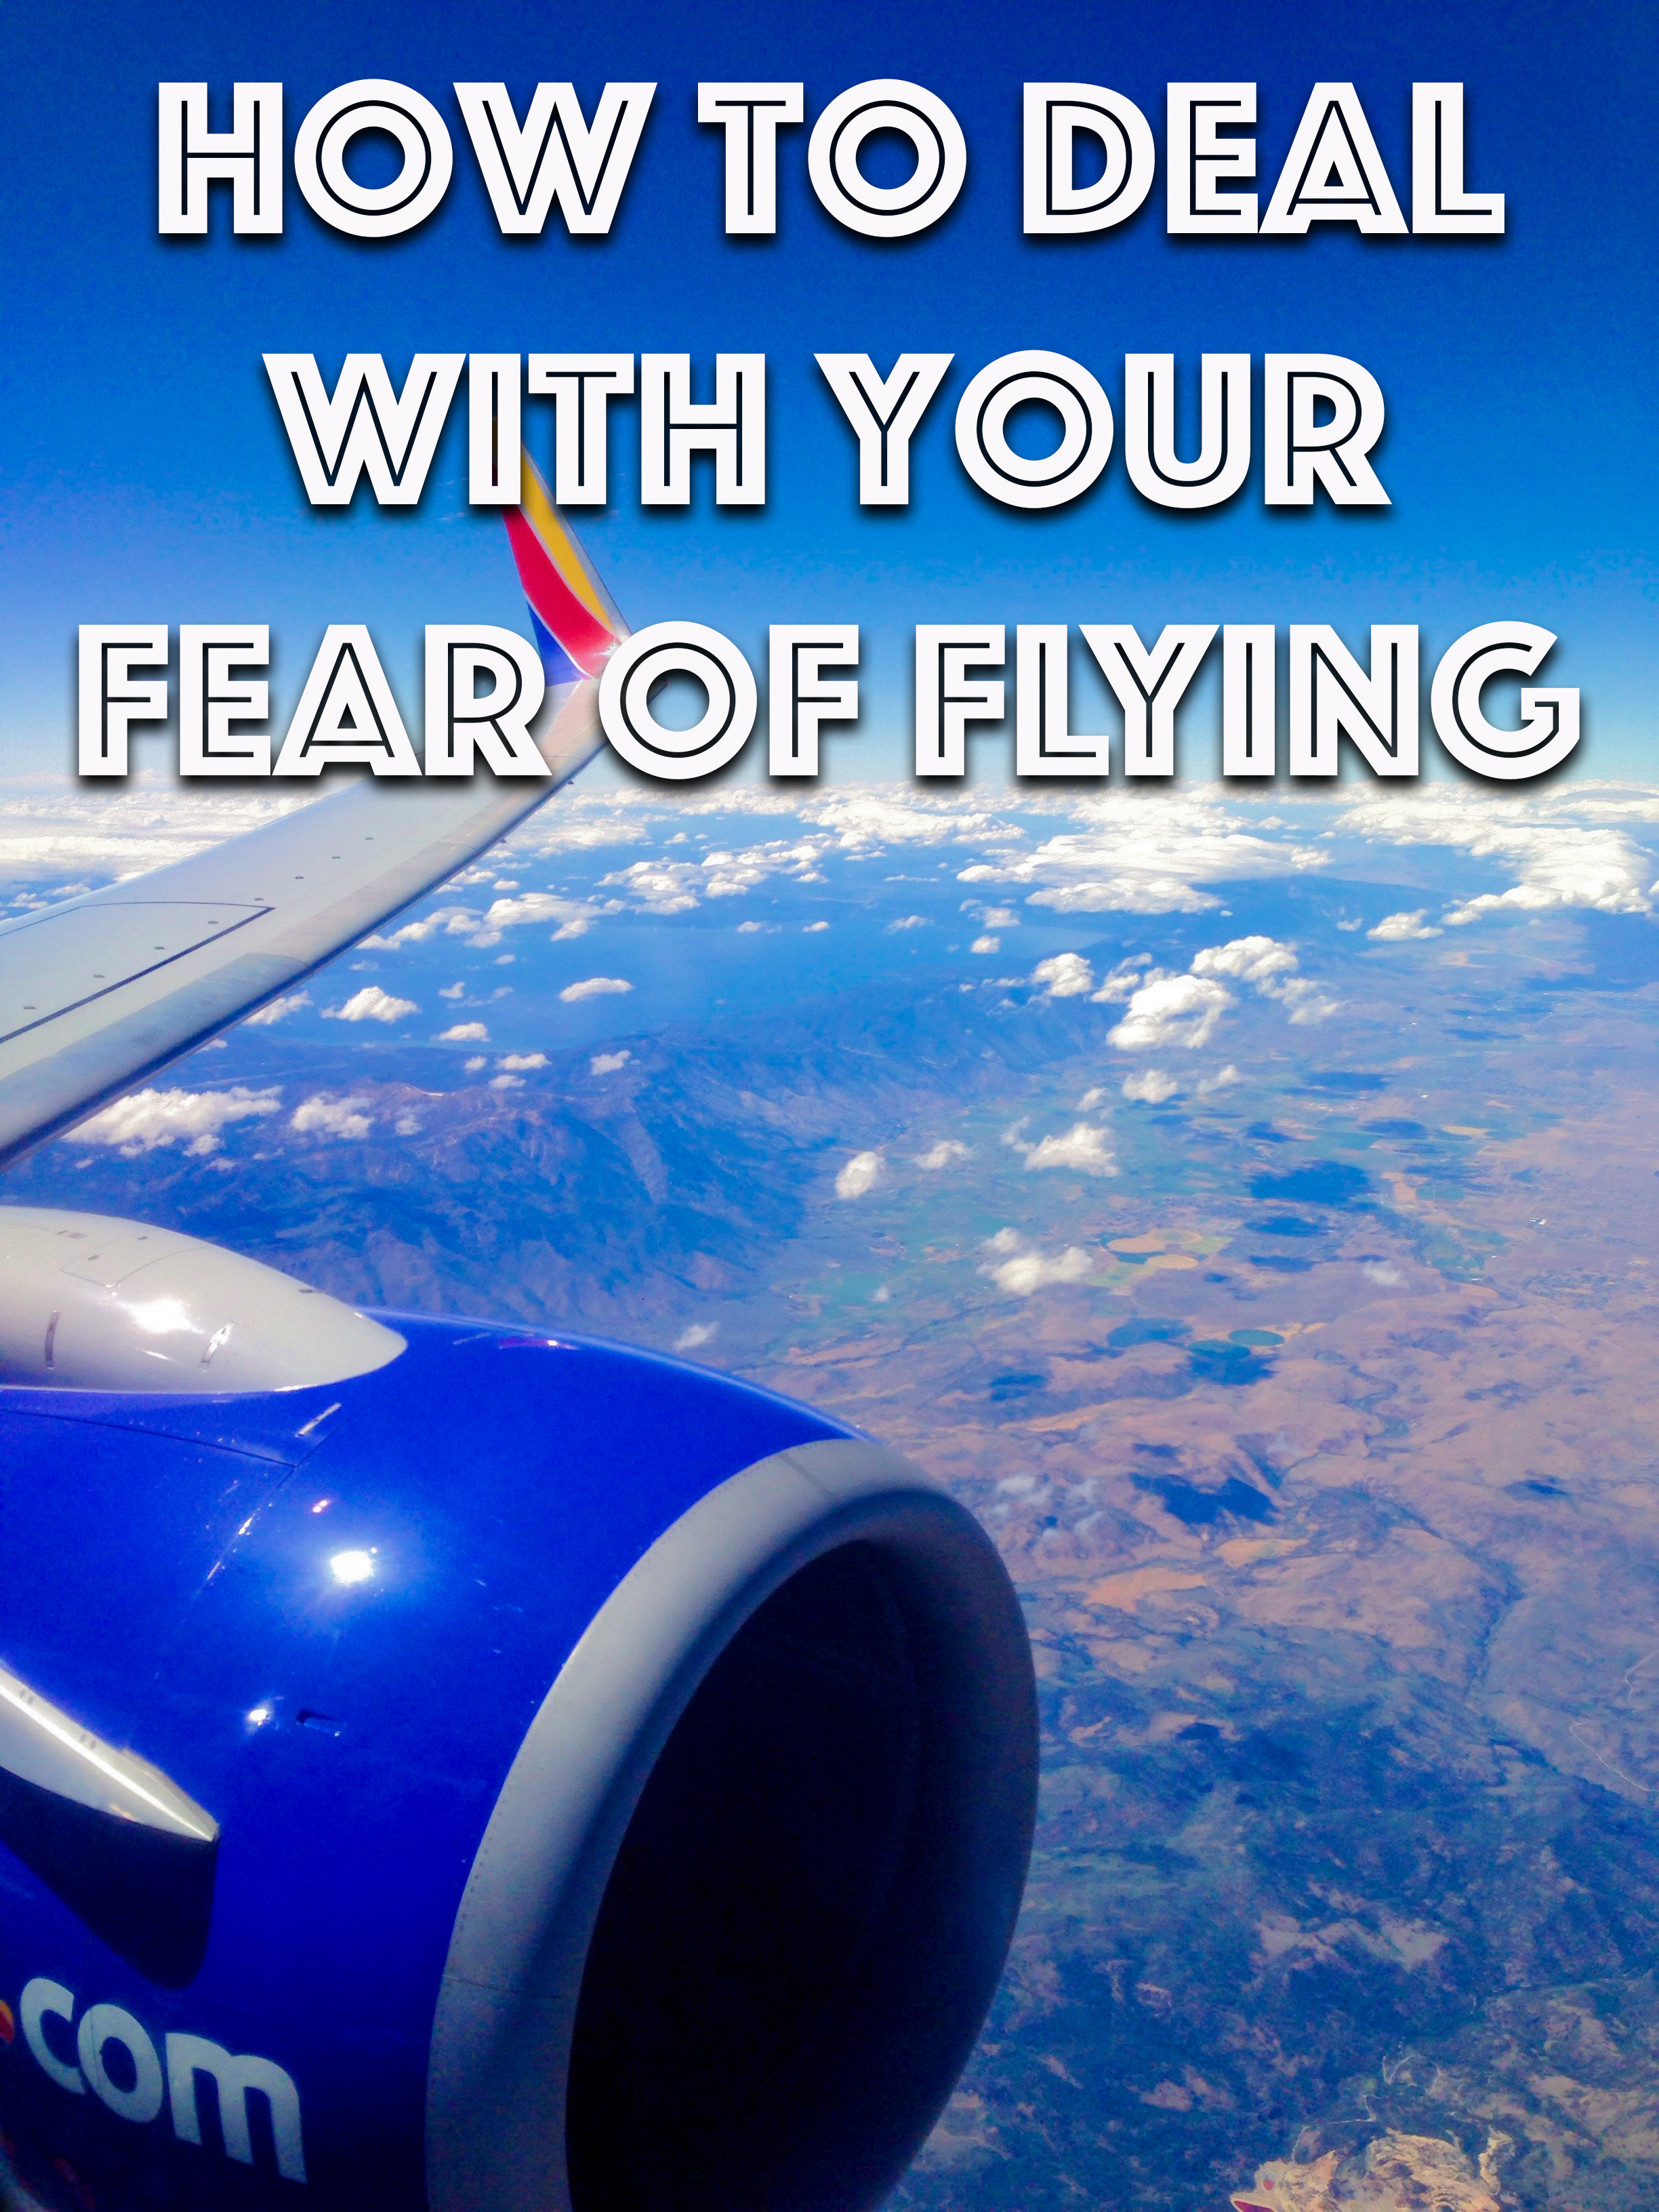 How to Deal With Your Fear of Flying